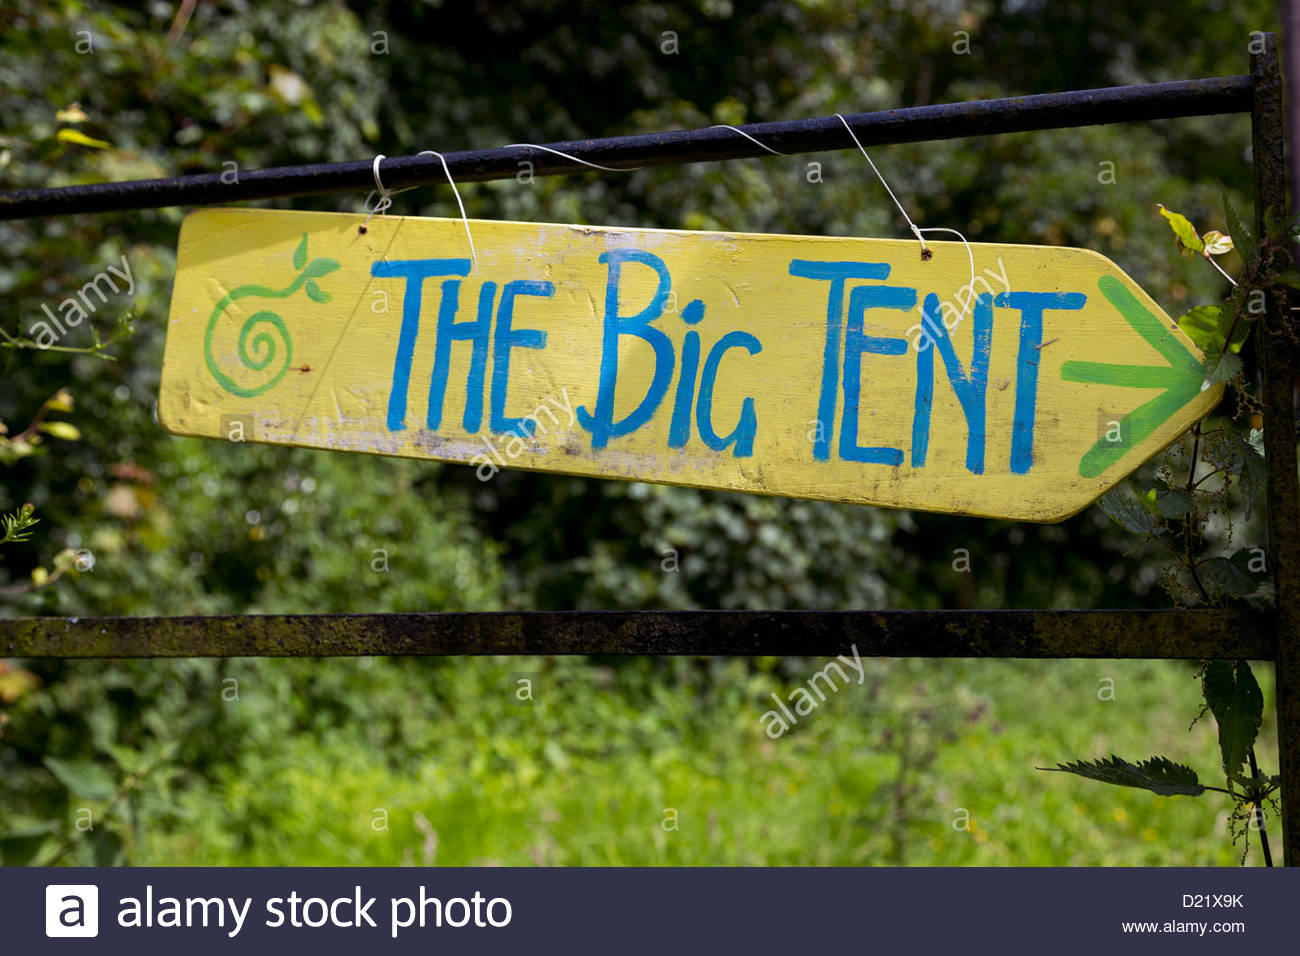 A hand painted sign for The Big Tent - Scotland's Environmental Festival, held at Falkland, Fife. - Stock Image